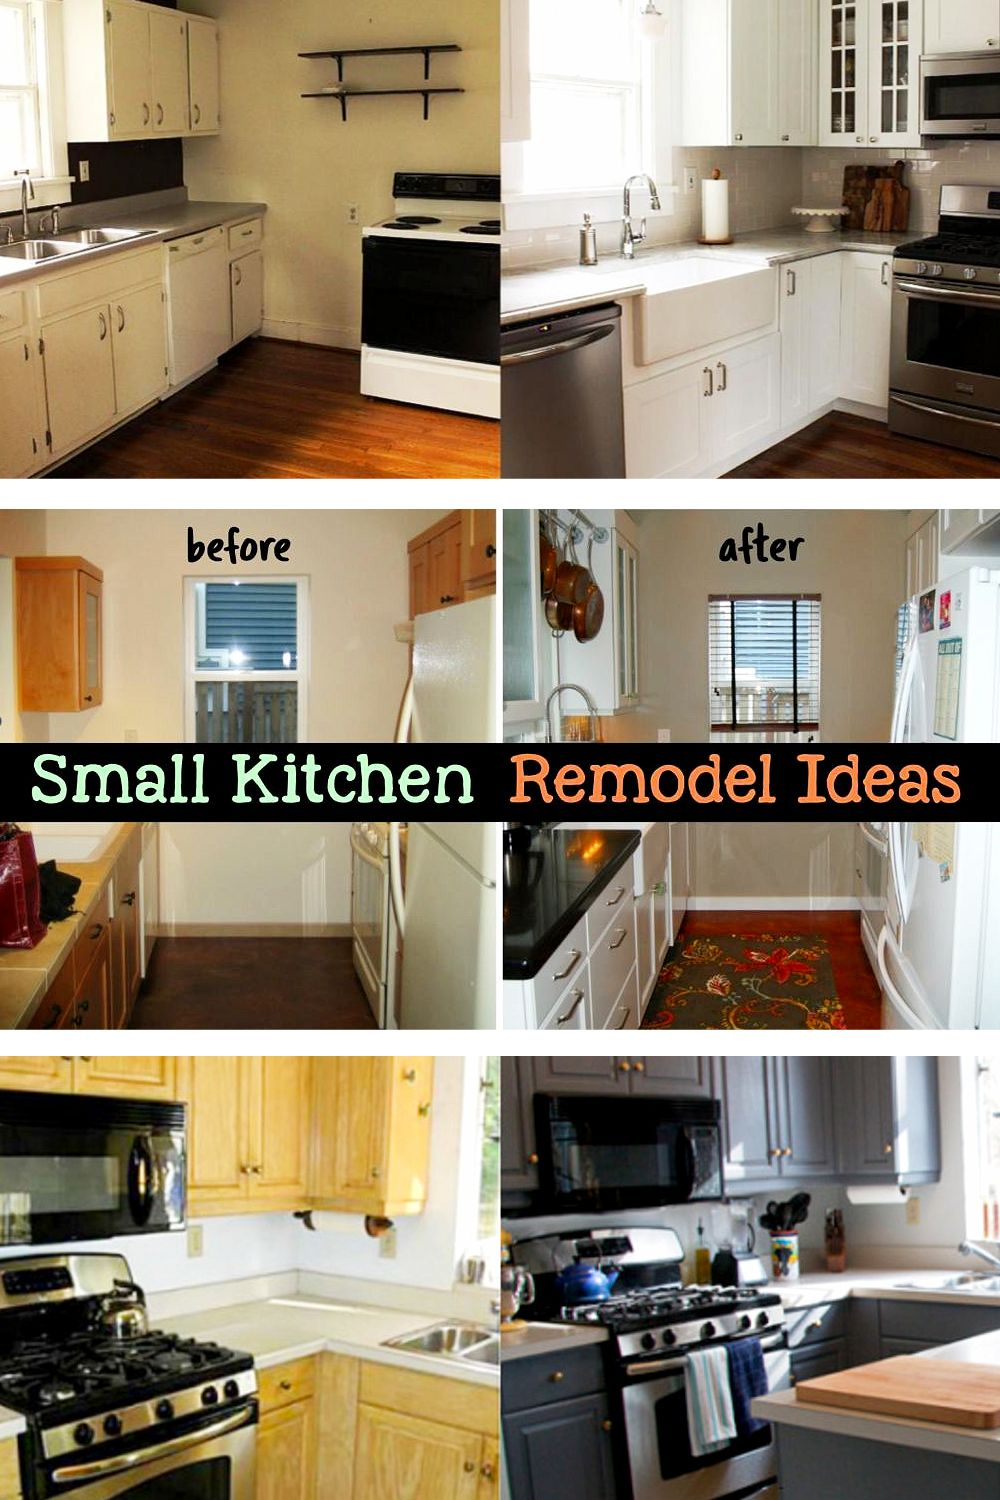 Small Kitchen Ideas On A Budget Before After Remodel Pictures Of Tiny Kitchens Clever Diy Ideas Kitchen Remodel Small Small Kitchen Ideas On A Budget Small Apartment Kitchen Decor